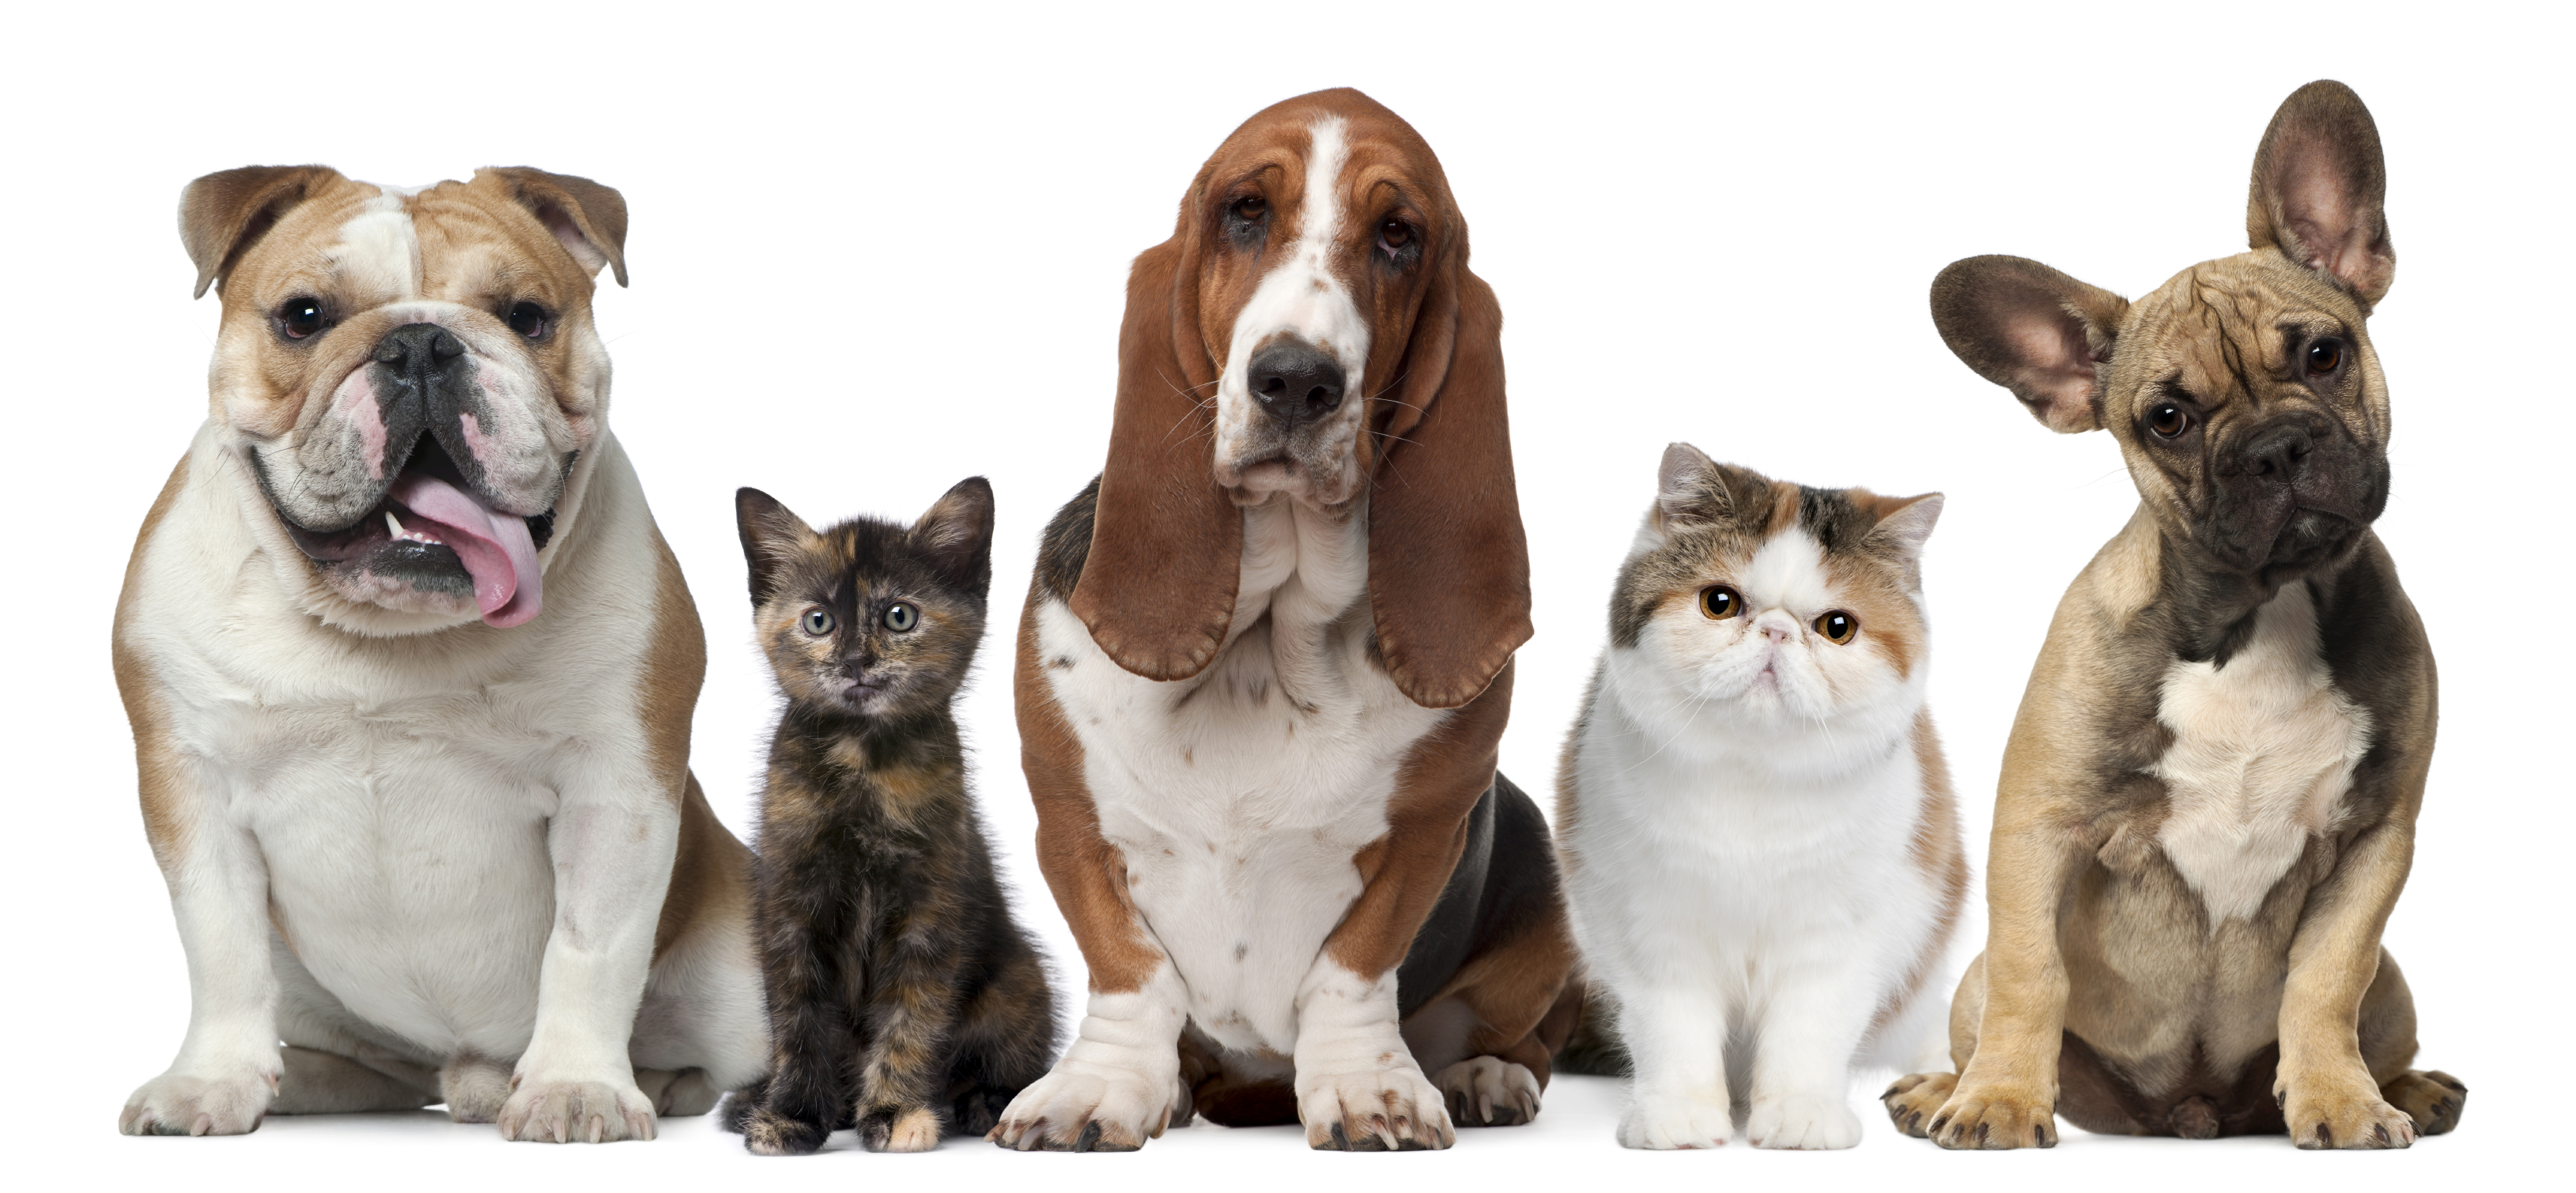 Our Furry Friends and Us